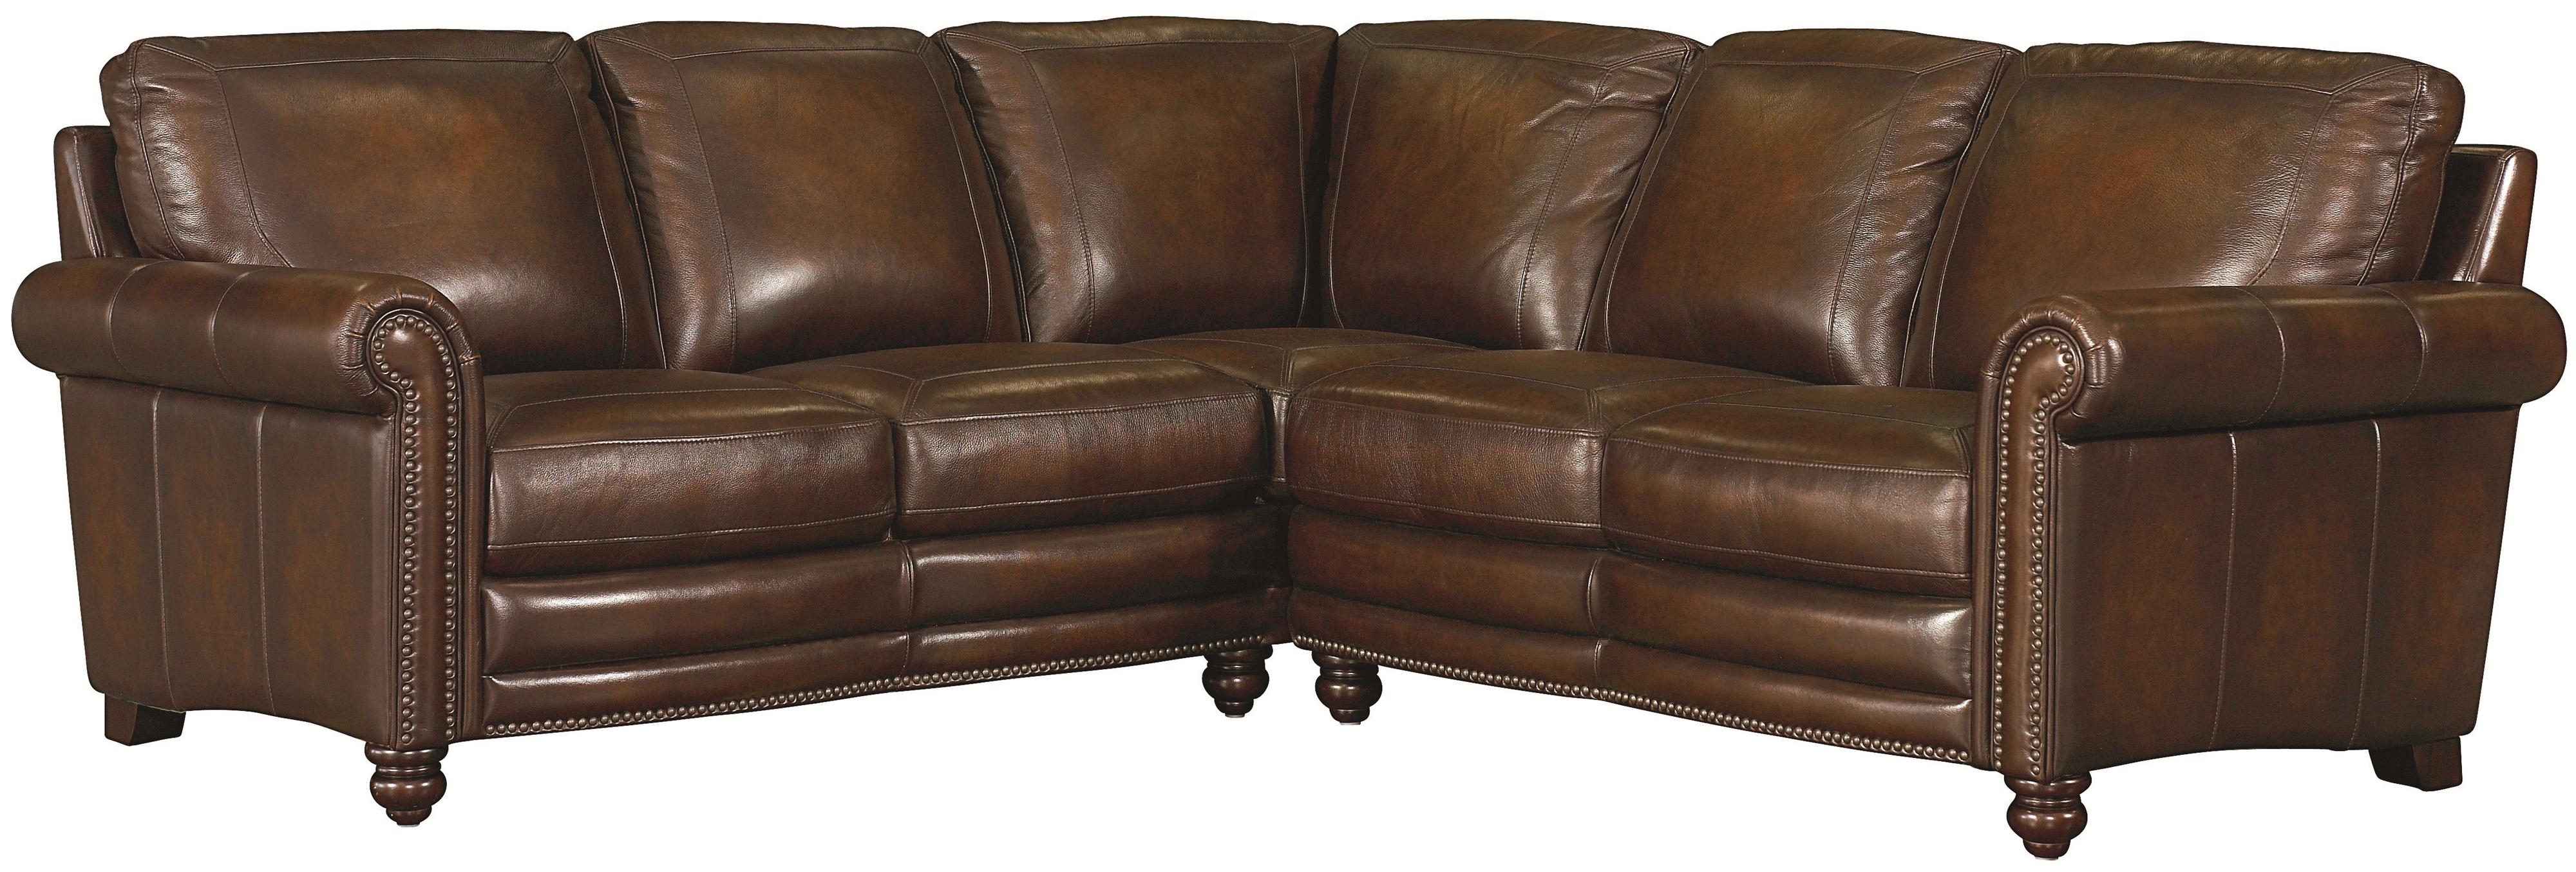 Bassett Hamilton Traditional L Shaped Leather Sectional with Nail